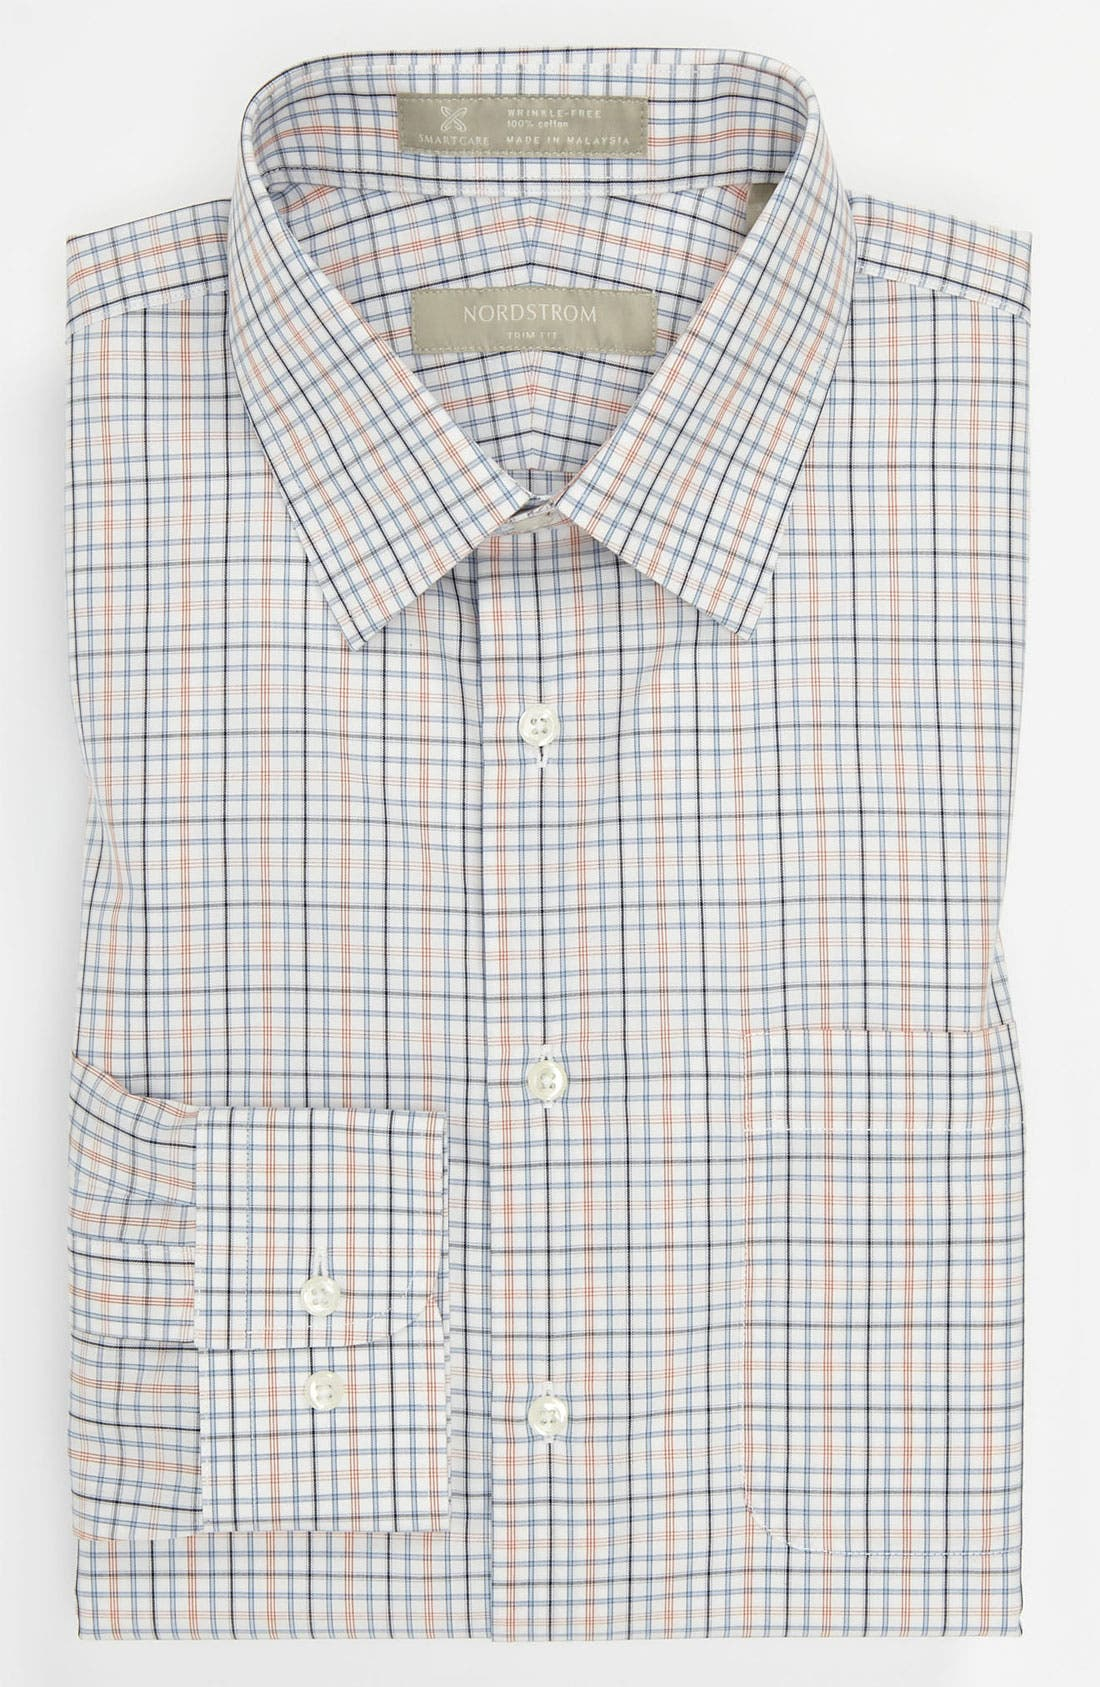 Nordstrom Smartcare<sup>™</sup> Trim Fit Dress Shirt,                         Main,                         color, 800